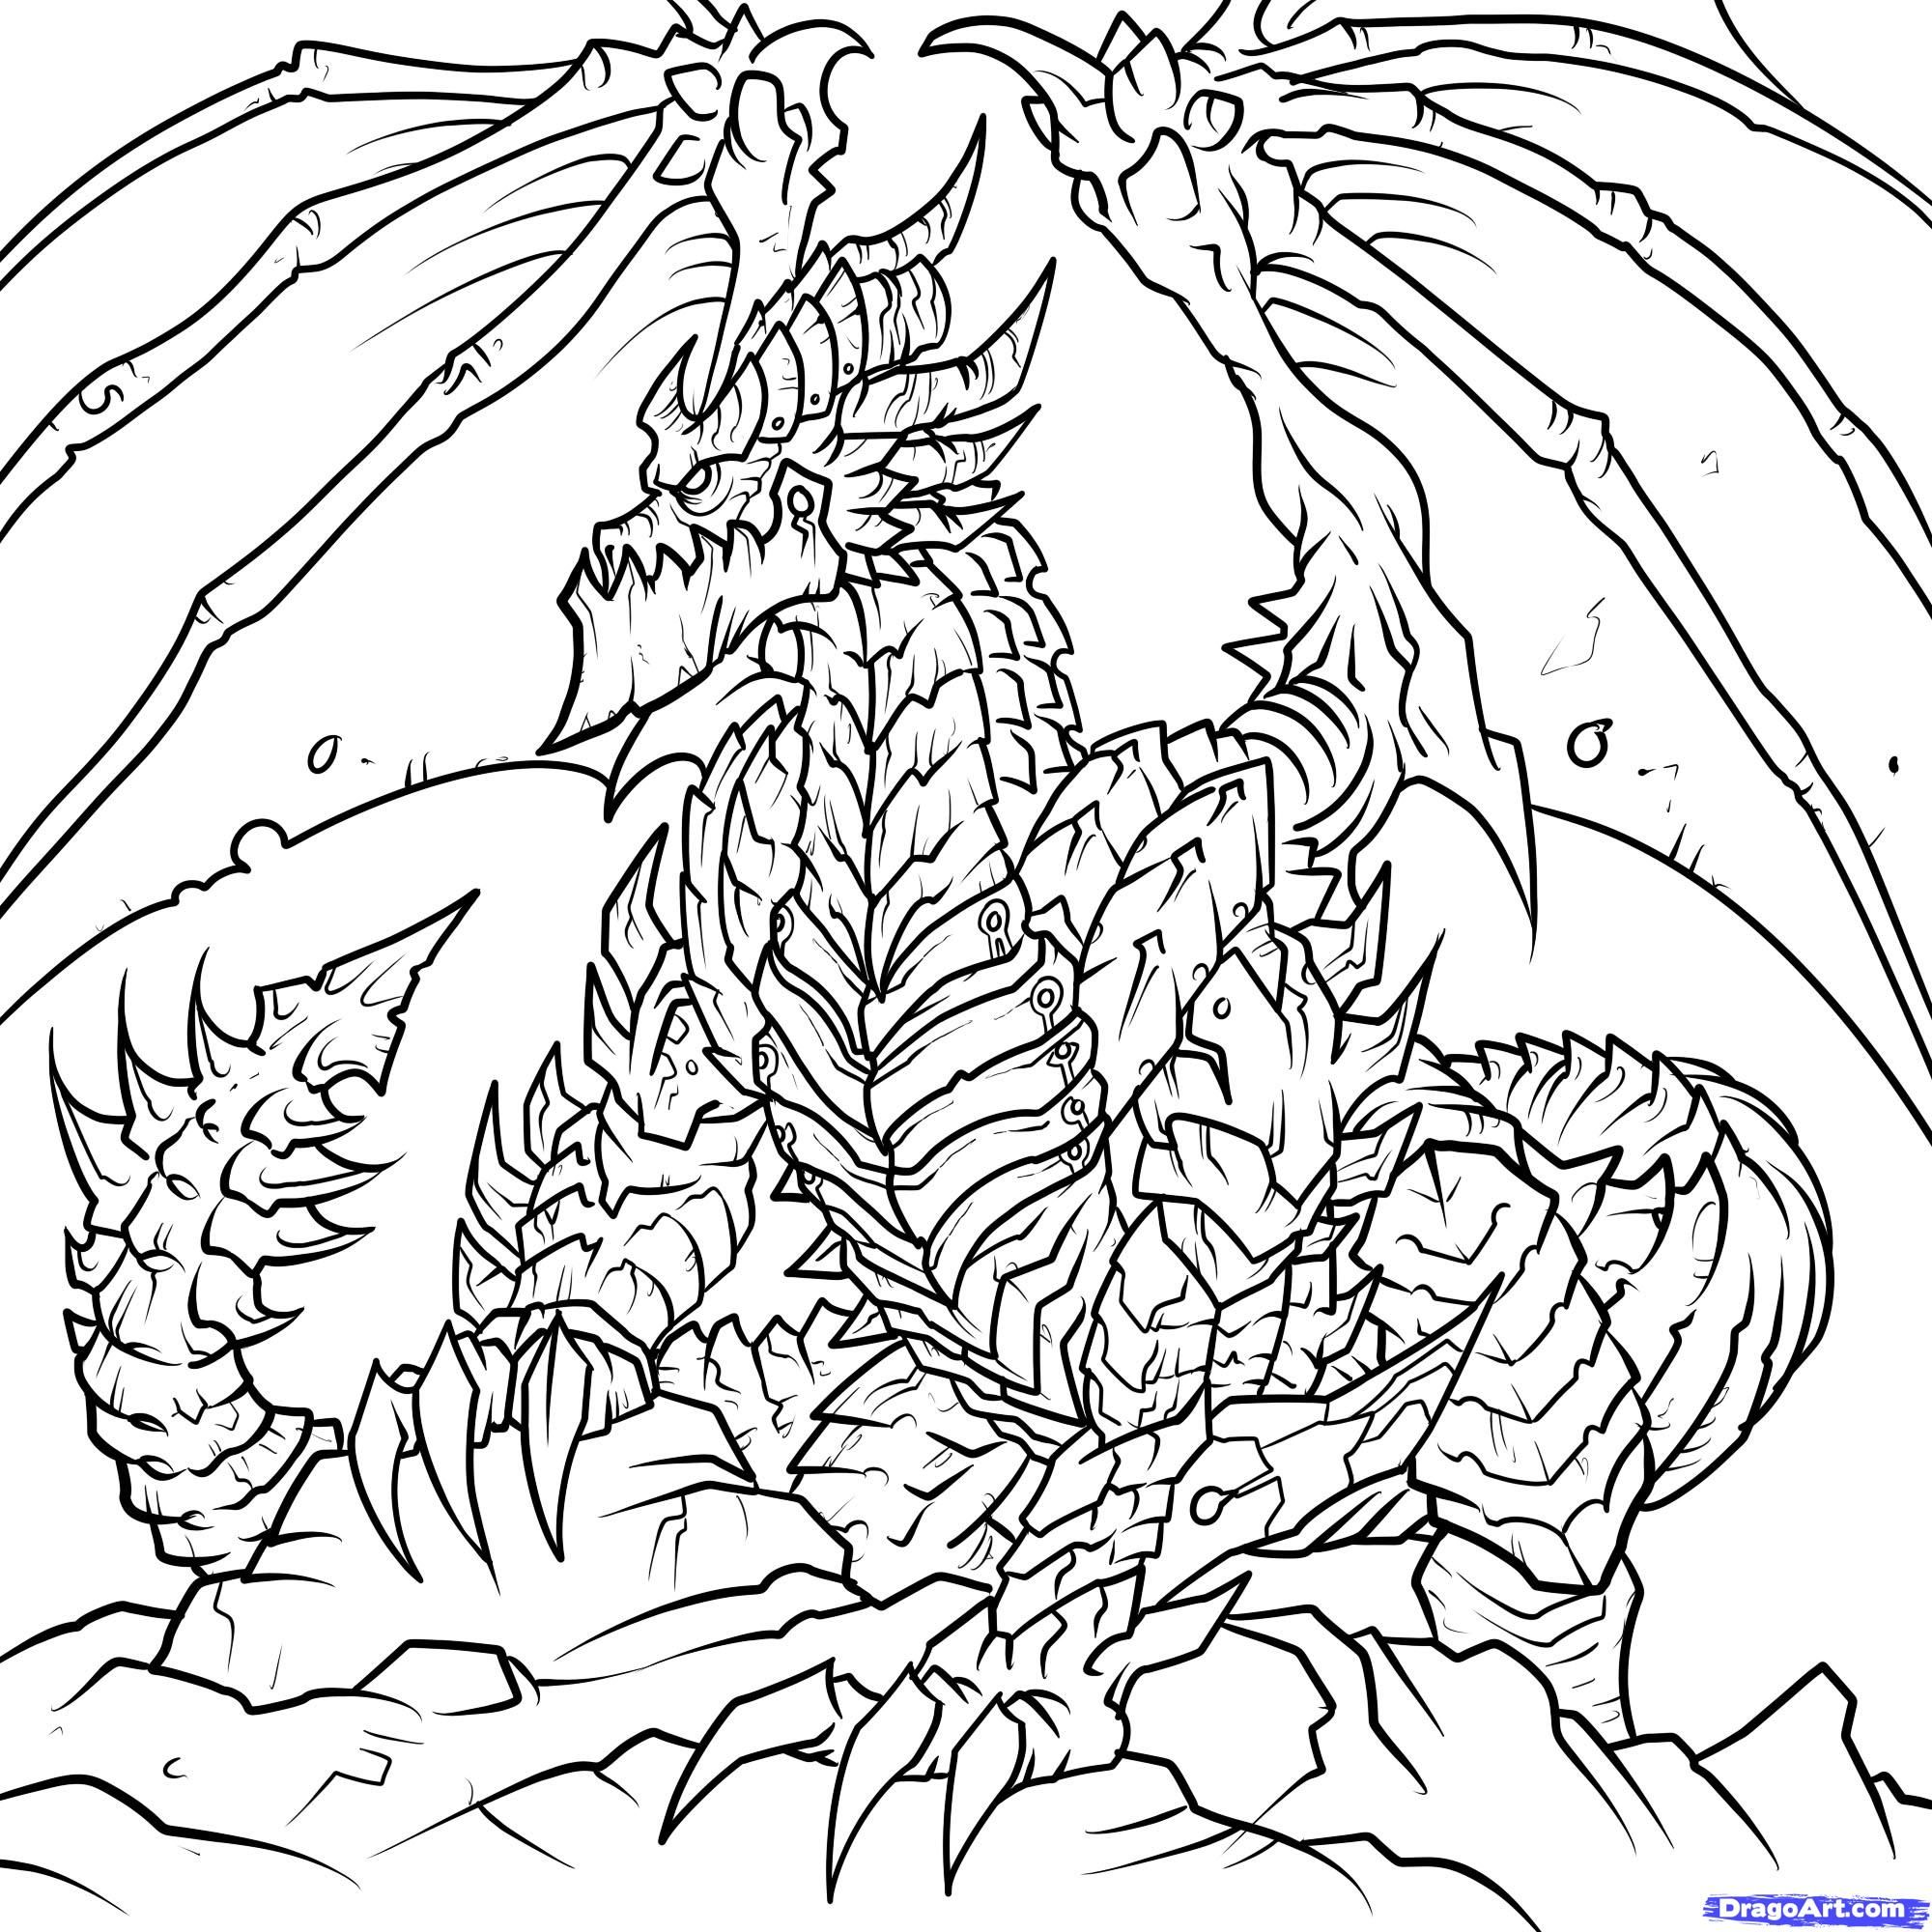 world of warcraft coloring book google search furry fishy